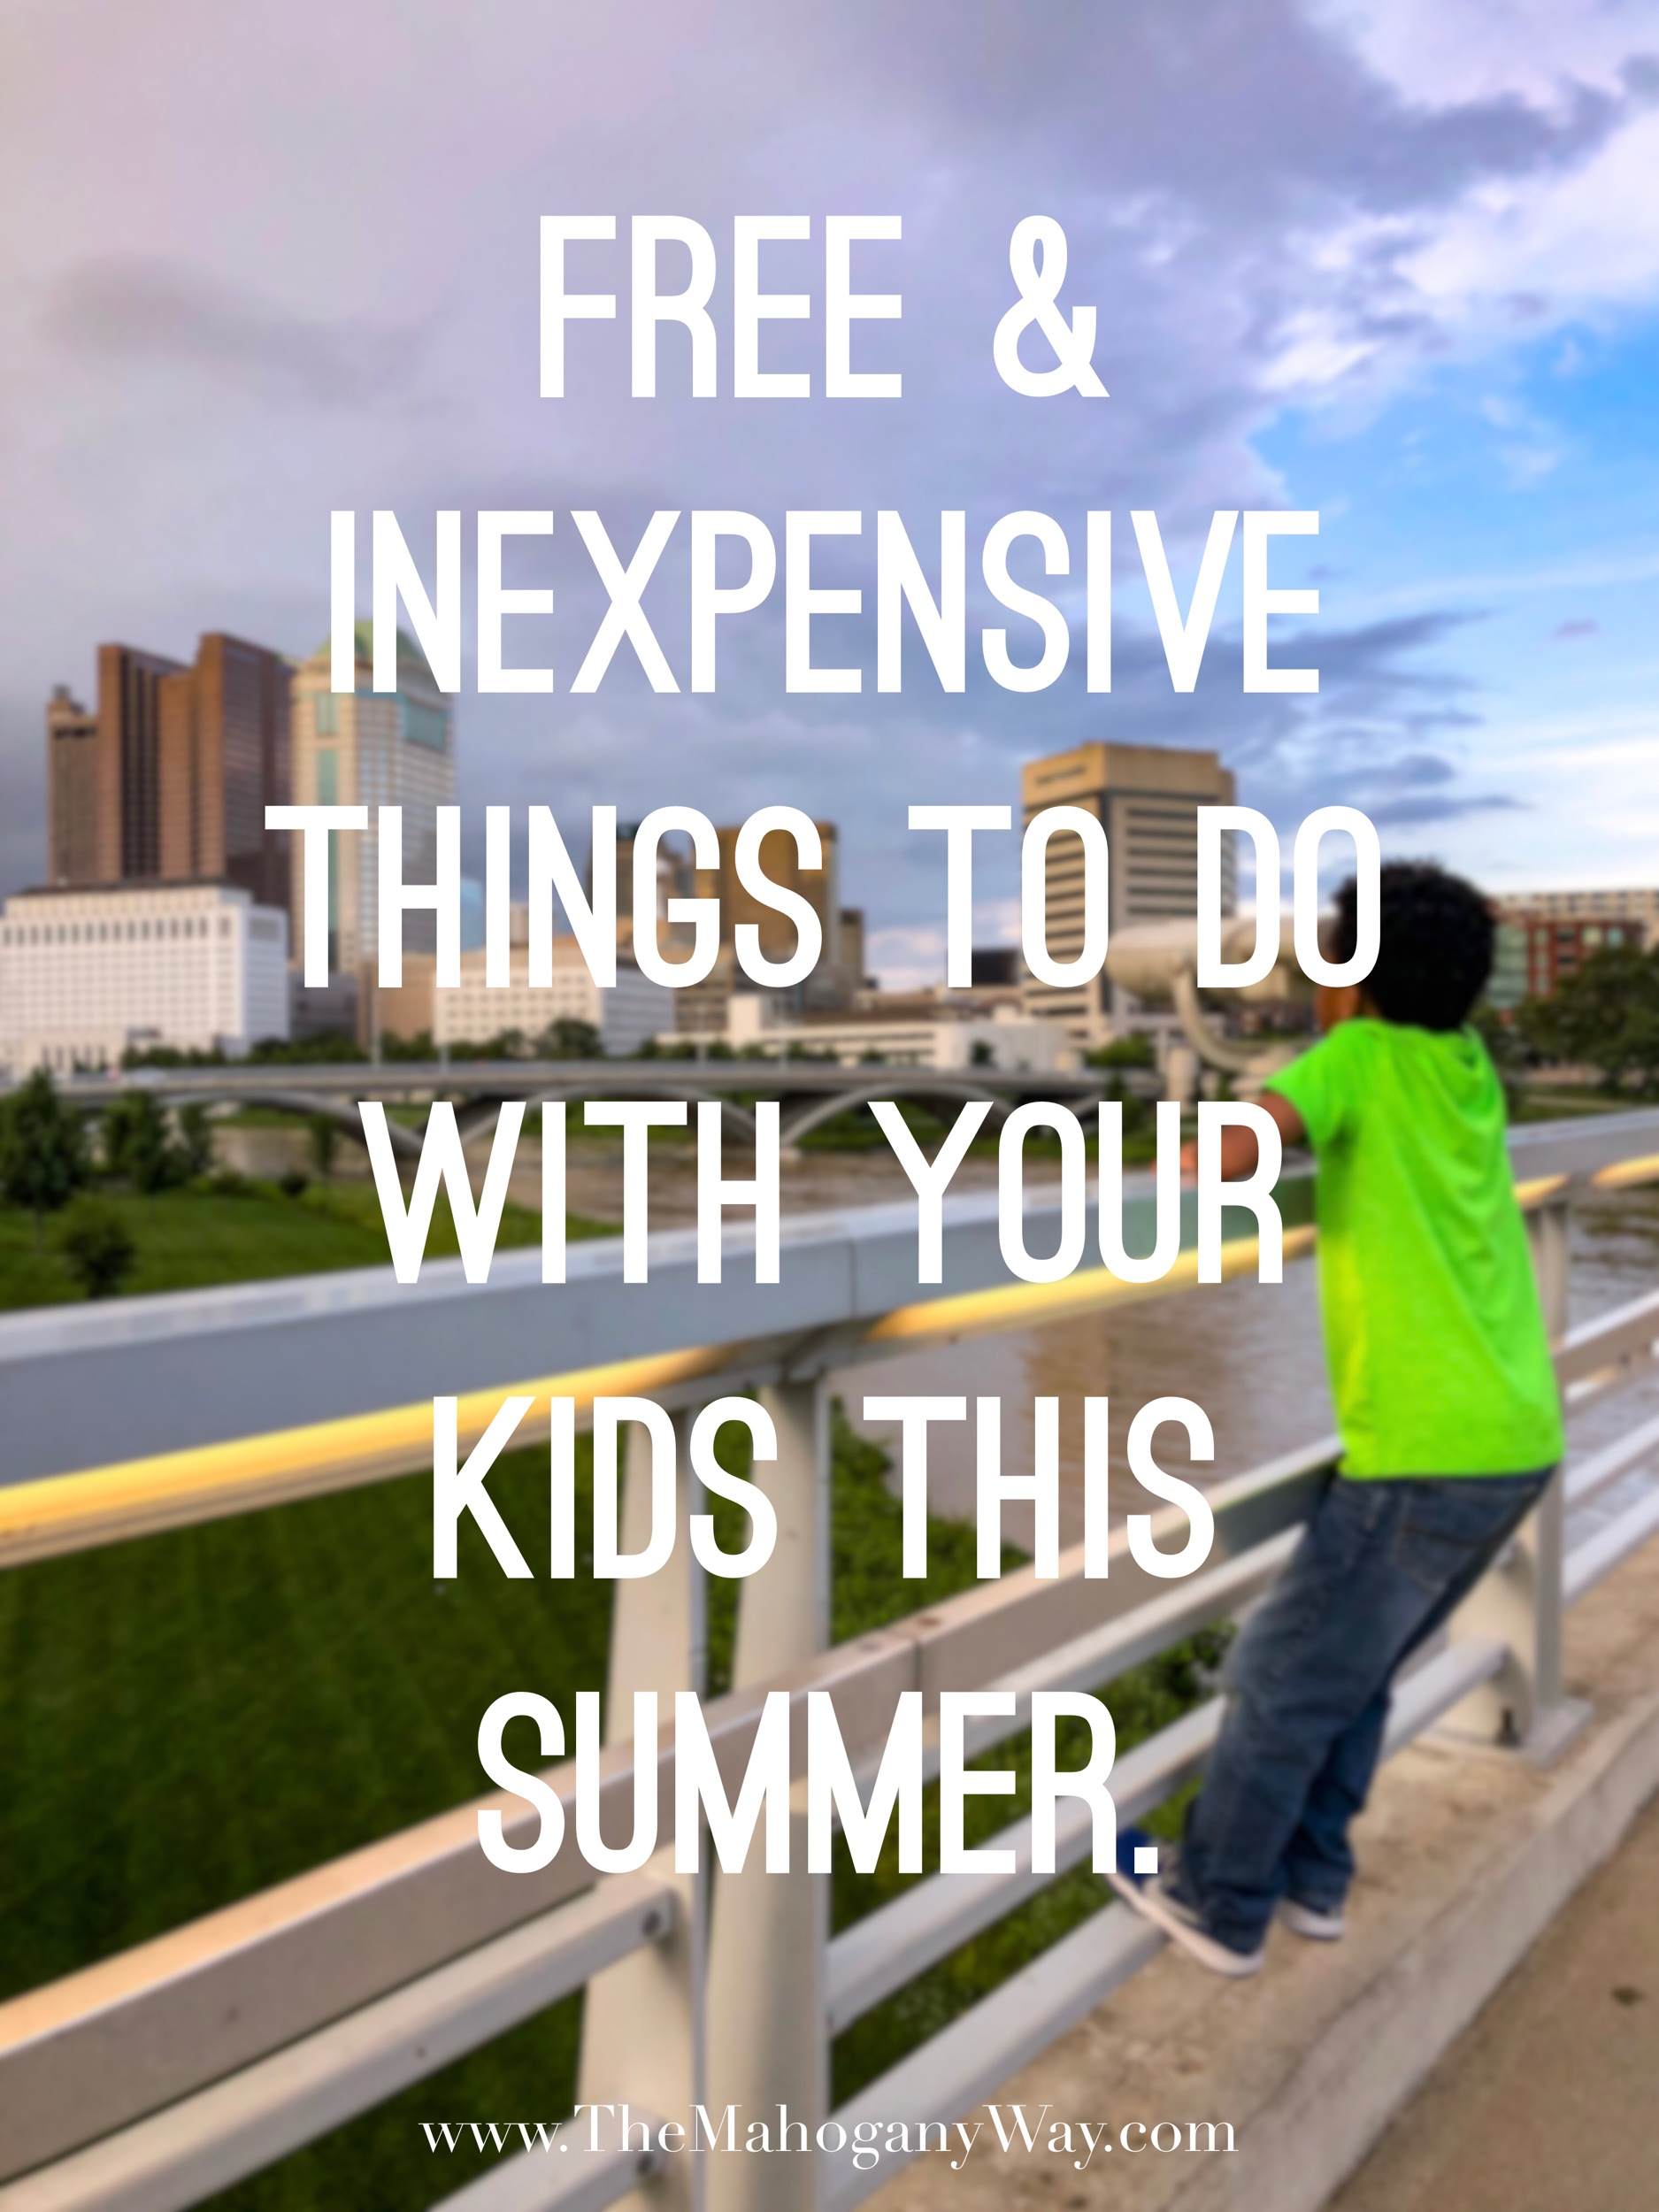 Free and inexpensive things to do with your kids this summer -  The Mahogany Way